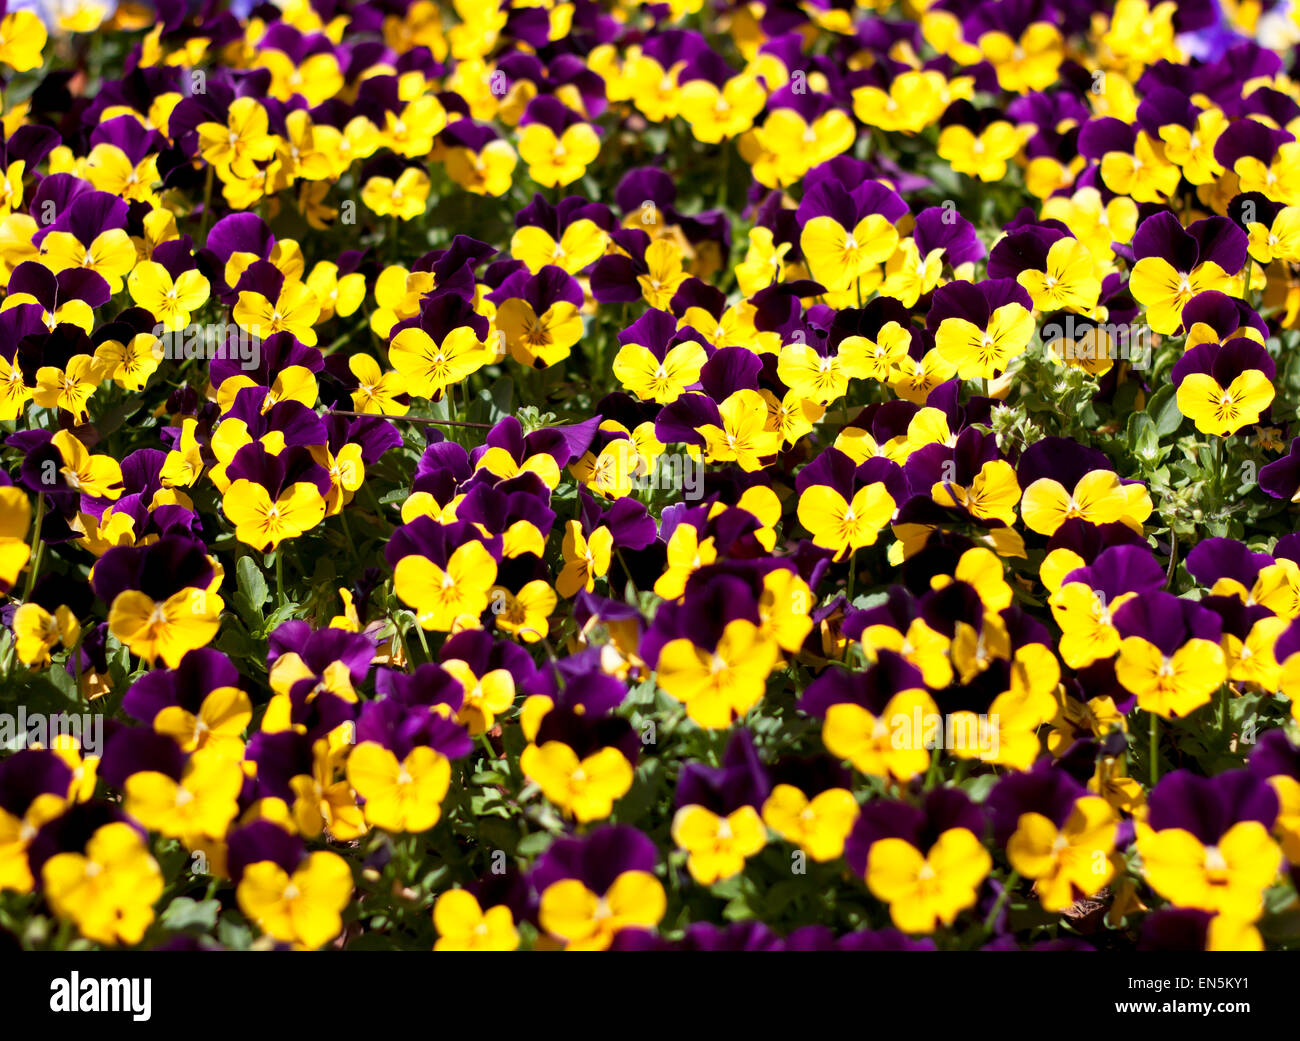 viola tricolor pansy  flower bed bloom in the garden - Stock Image